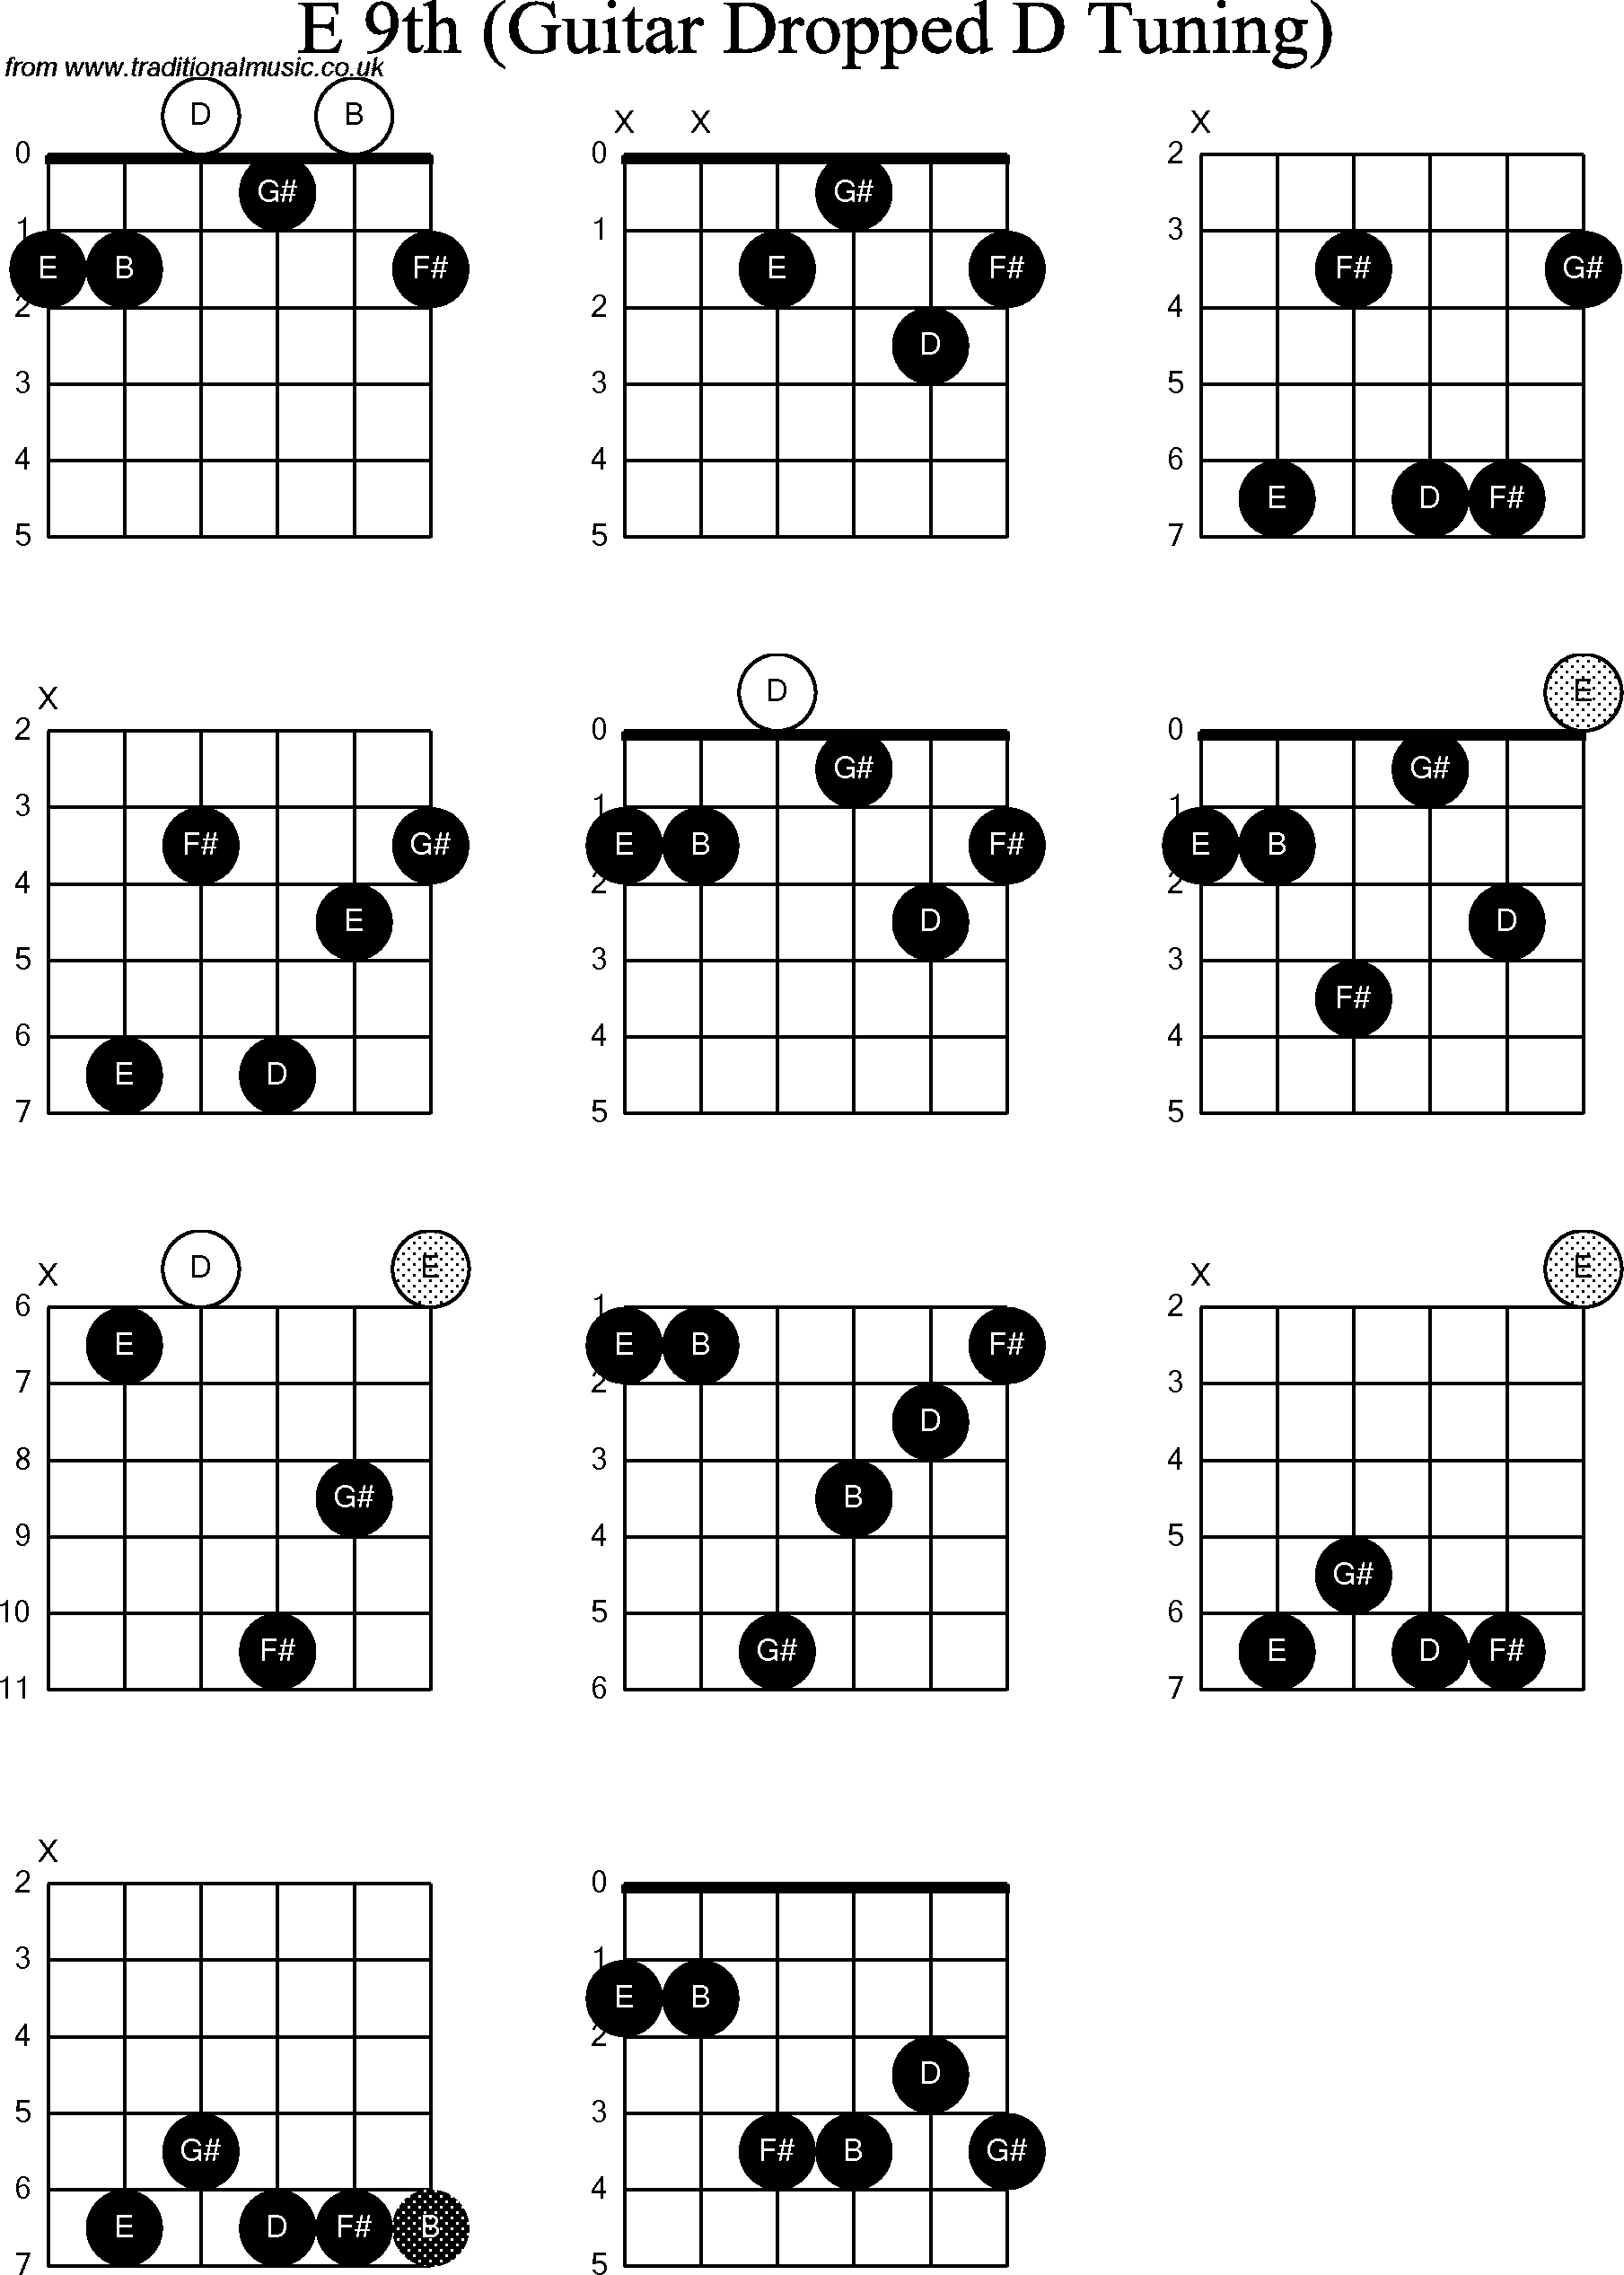 Chord diagrams for Dropped D Guitar(DADGBE), E9th